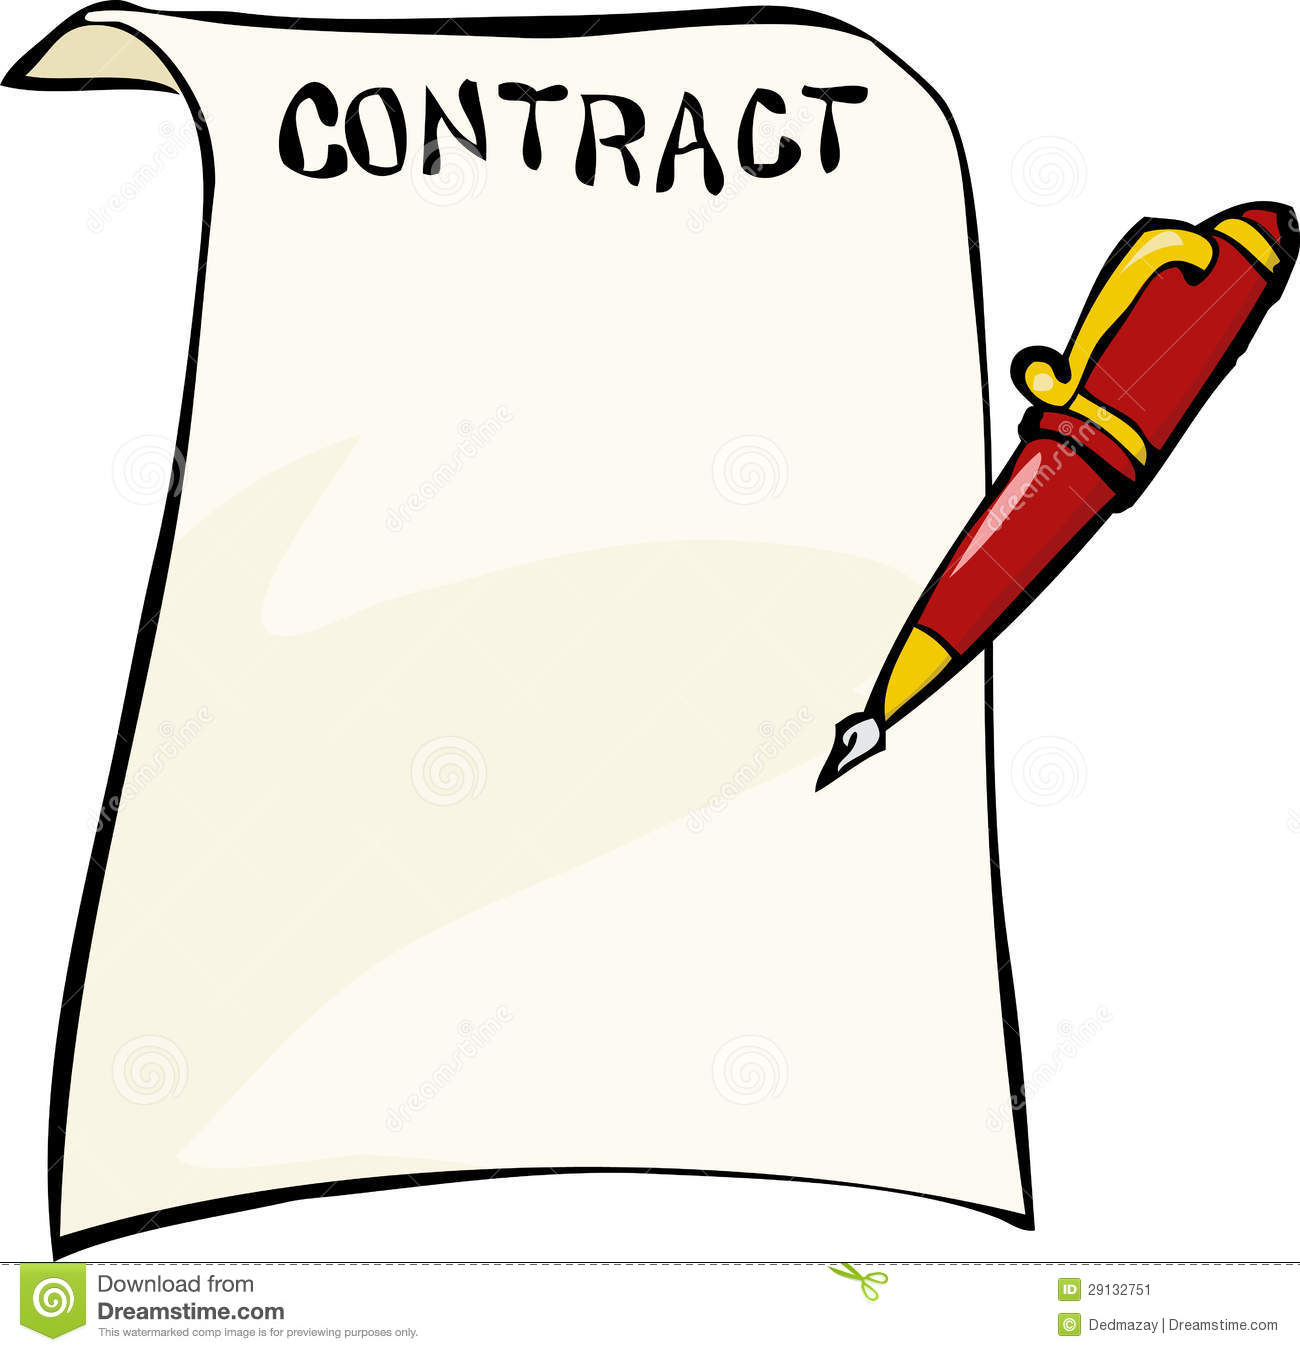 Contract Stock Image - Image: 29132751